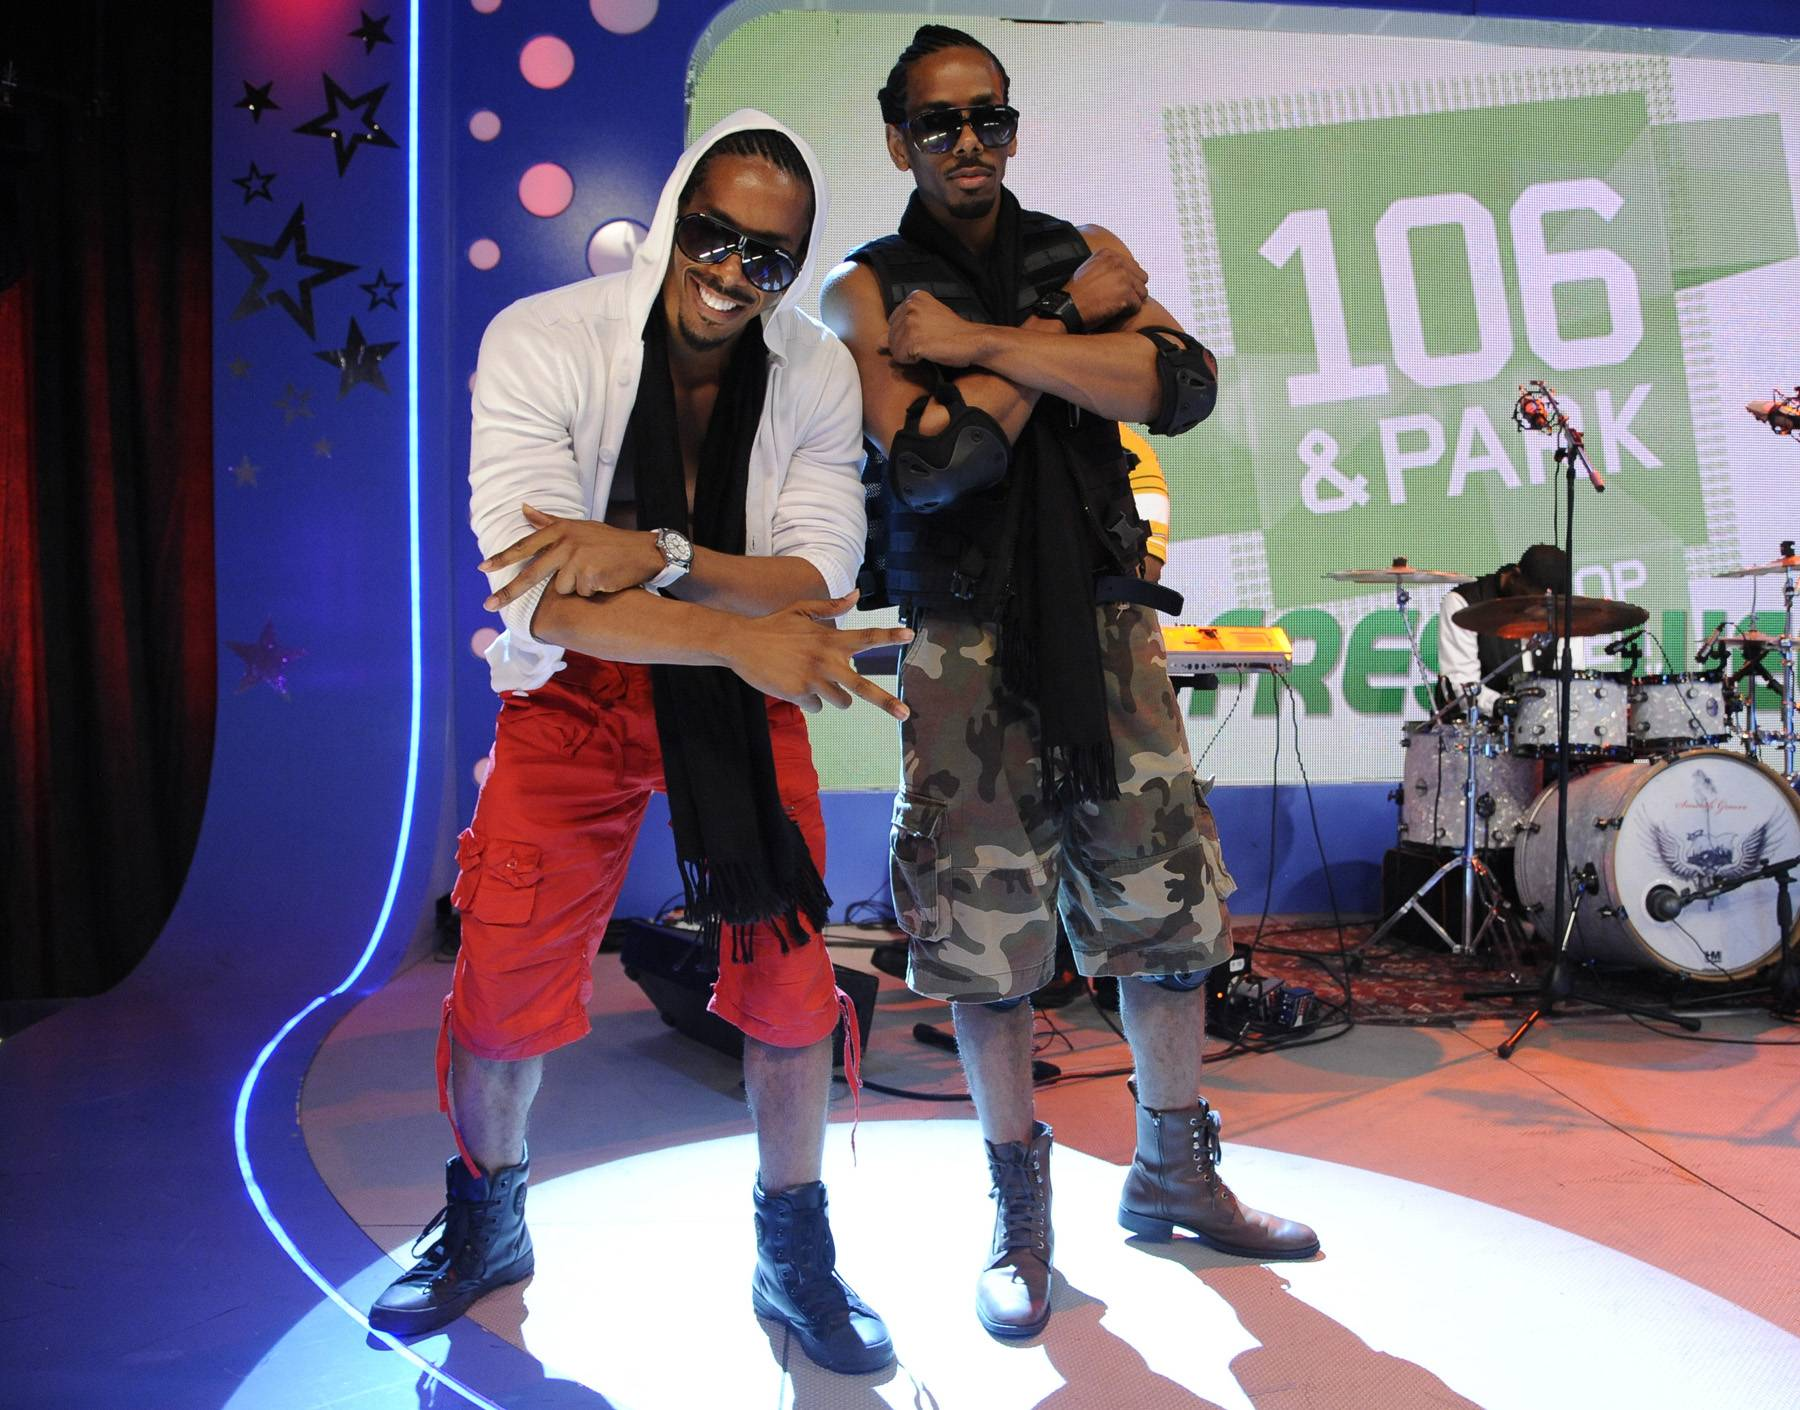 Twin Power - Wild Out Wednesday competitors Timez 2 at 106 & Park, May 2, 2012. (Photo: John Ricard/BET)